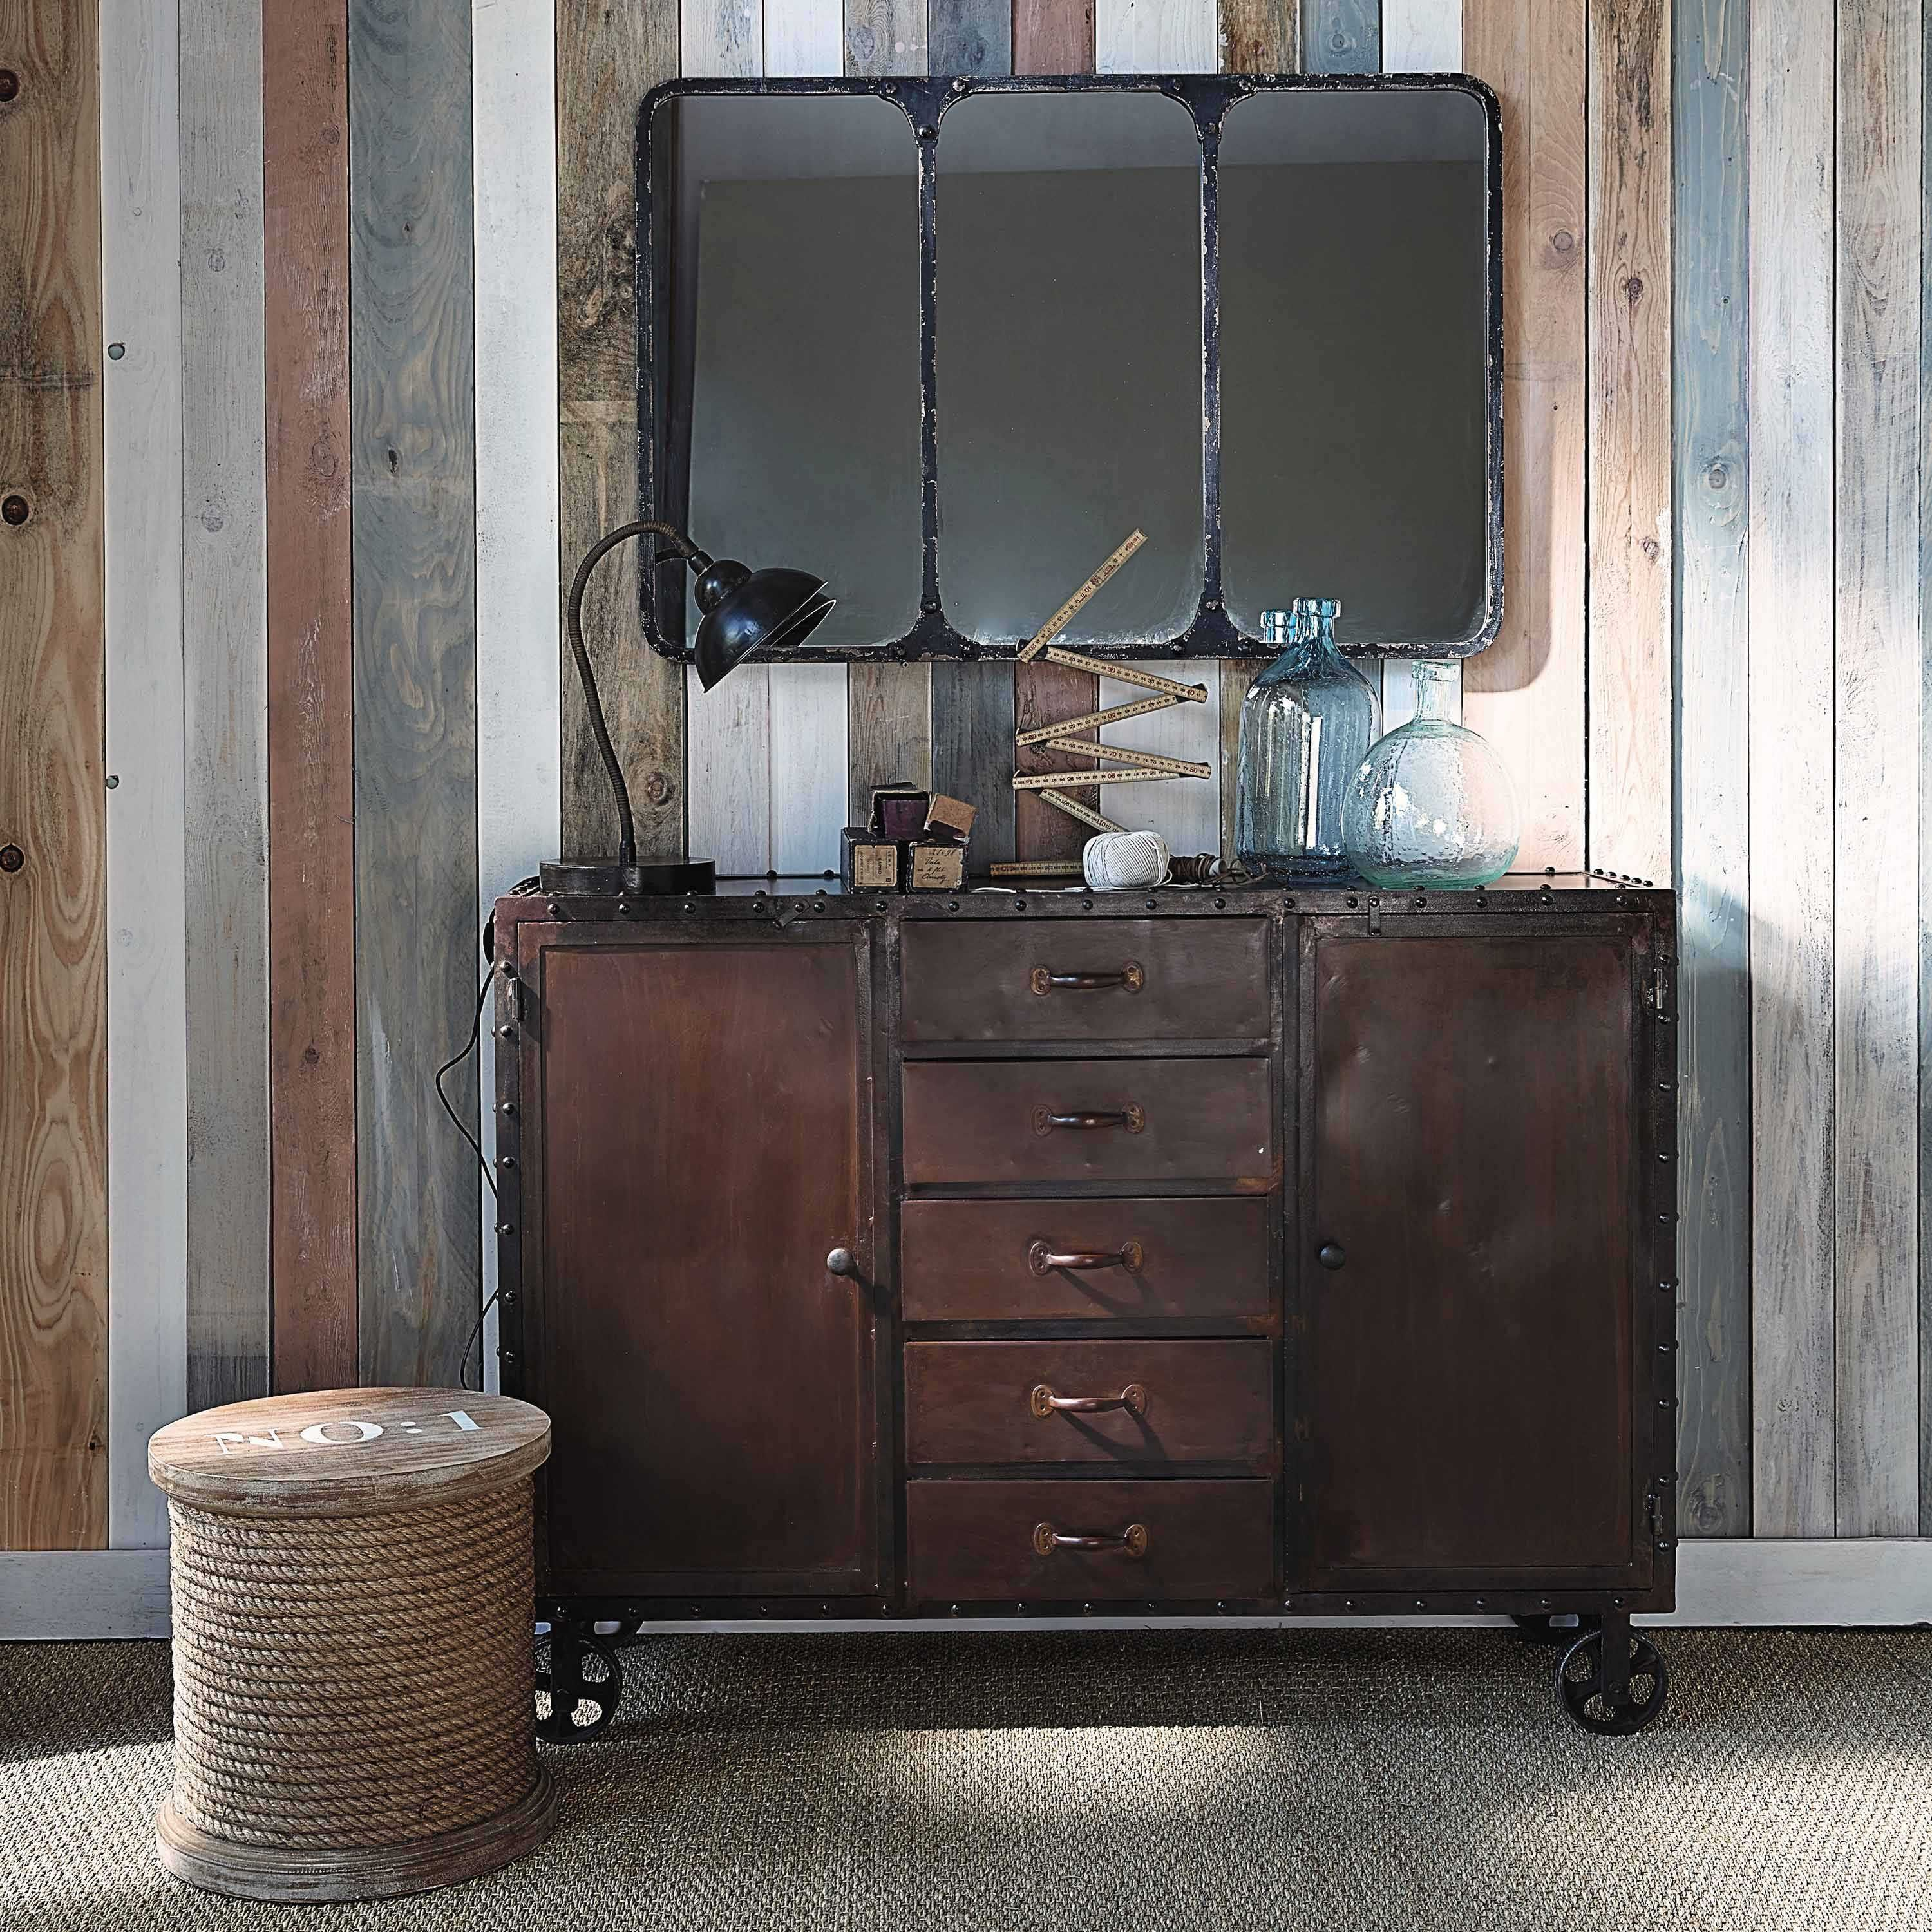 miroir indus en m tal noir 106x72 industriel pinterest m tal mobilier de salon et m tal noir. Black Bedroom Furniture Sets. Home Design Ideas